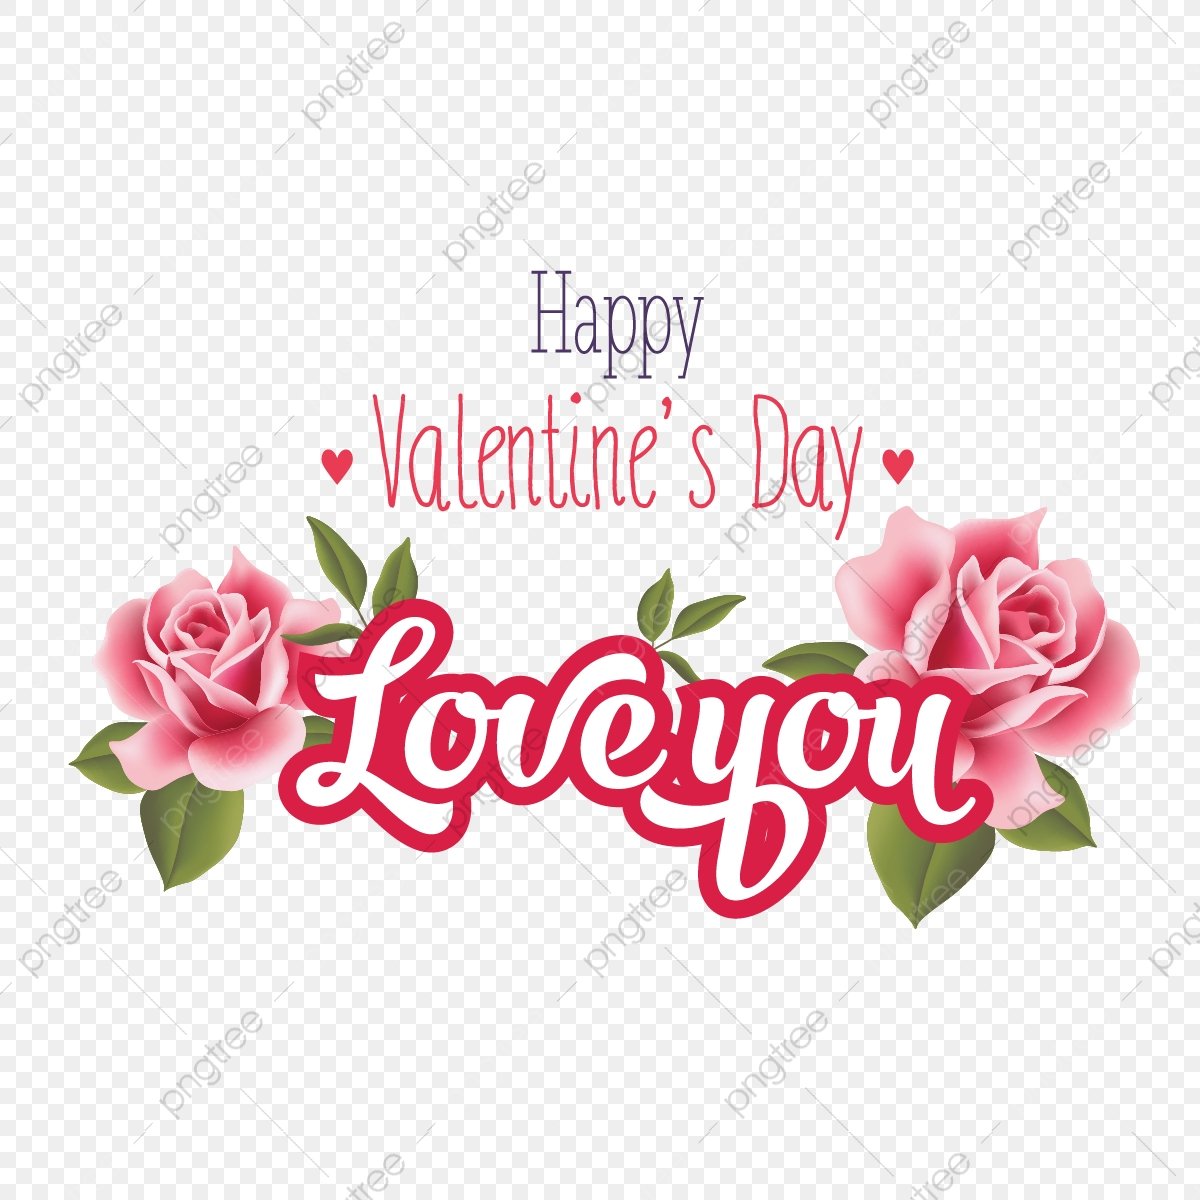 pngtree happy valentine day pink rose wishes png image